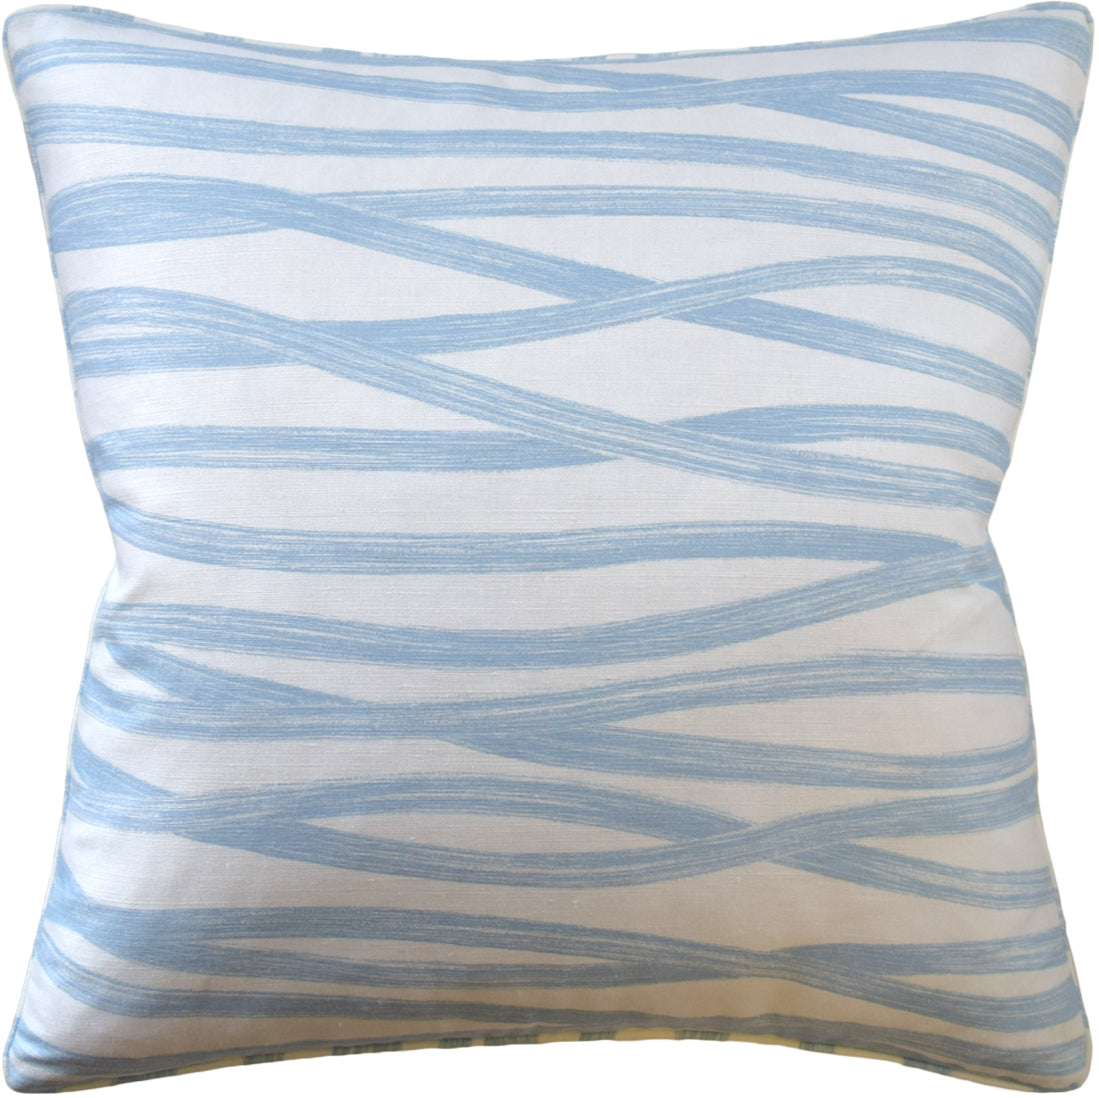 Ryan Studio Pillow Brushstrokes in Sky